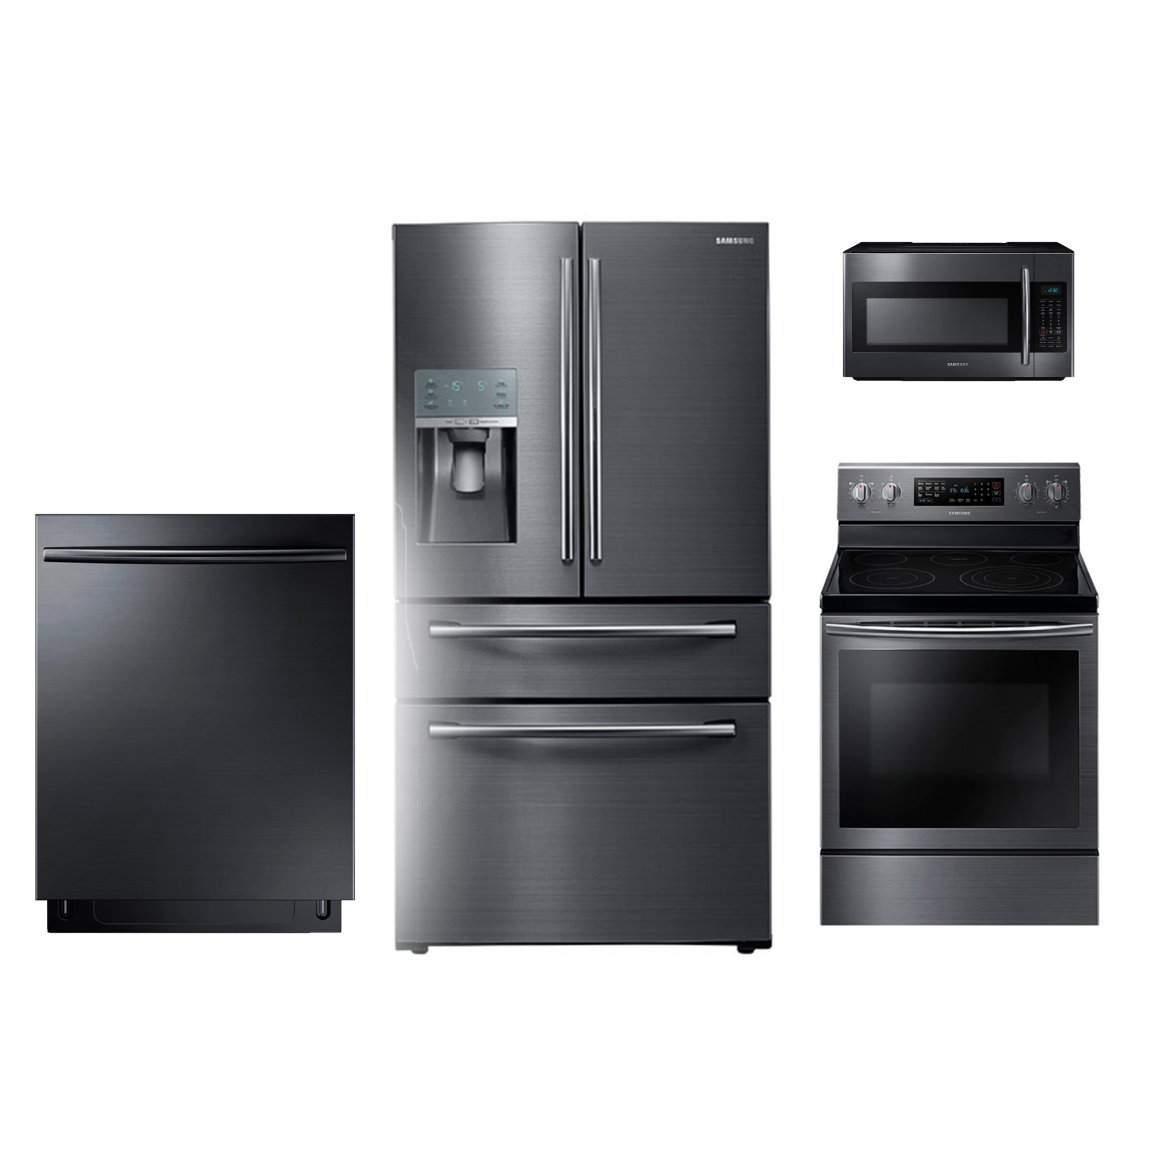 Samsung 4 Piece Kitchen Appliance Package With 5.9 Cu. Ft